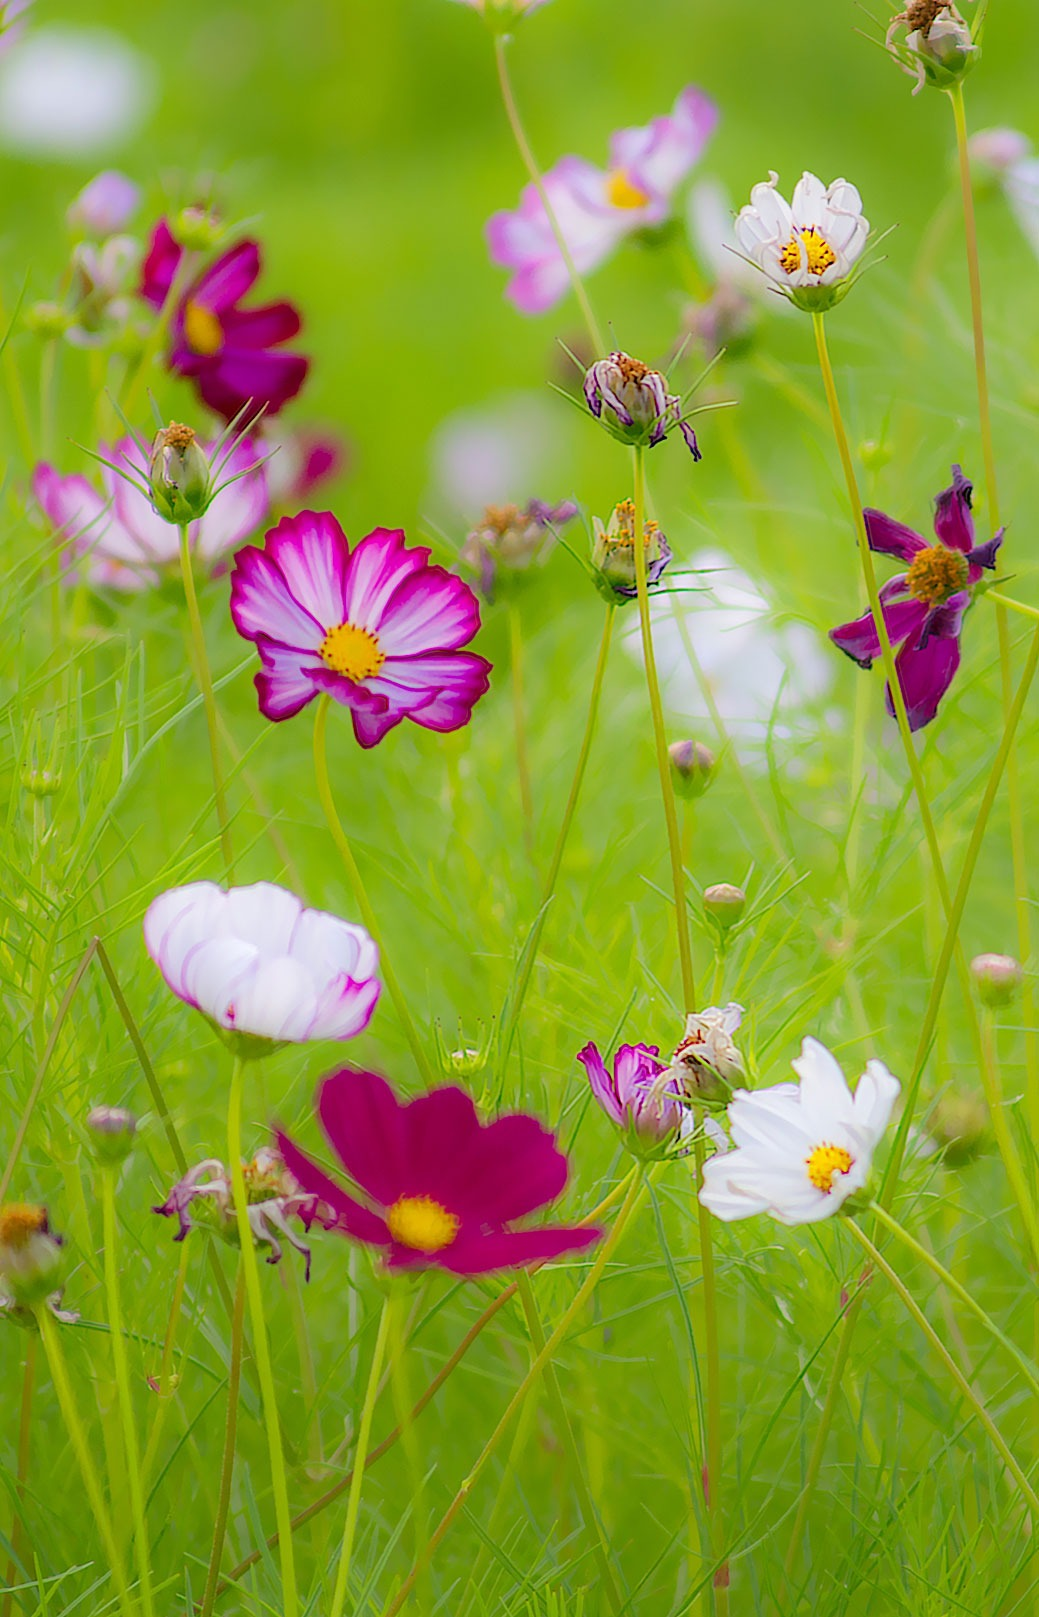 Free Photo of the Day – Summer Wildflowers